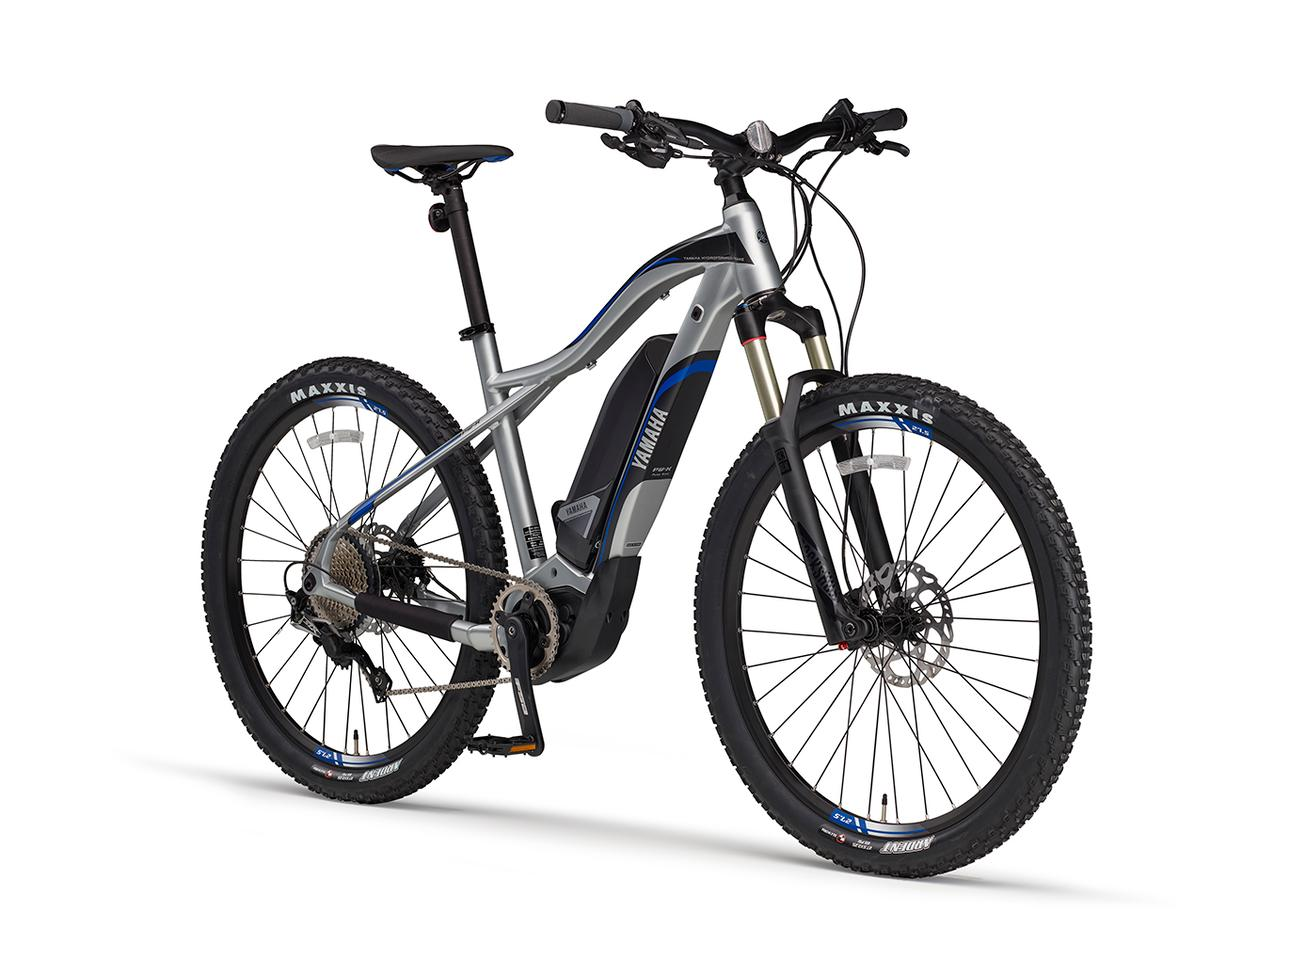 Yamaha launches 4 new mid-drive e-bikes in the USA